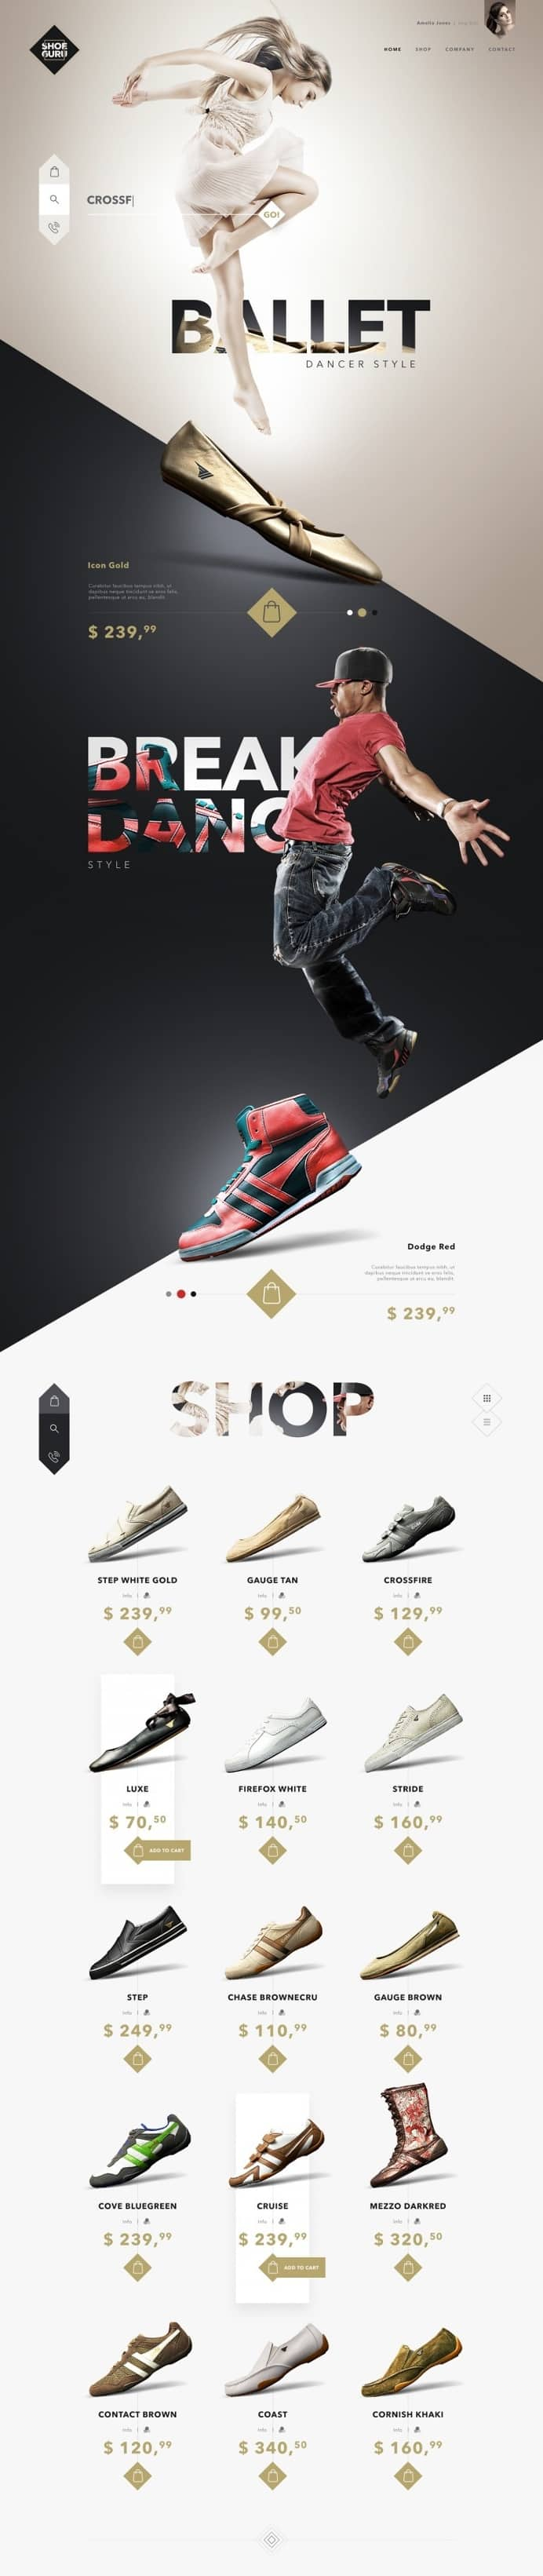 Shoe Guru – Online Shoe Shop Design – Ballet to Sneakers